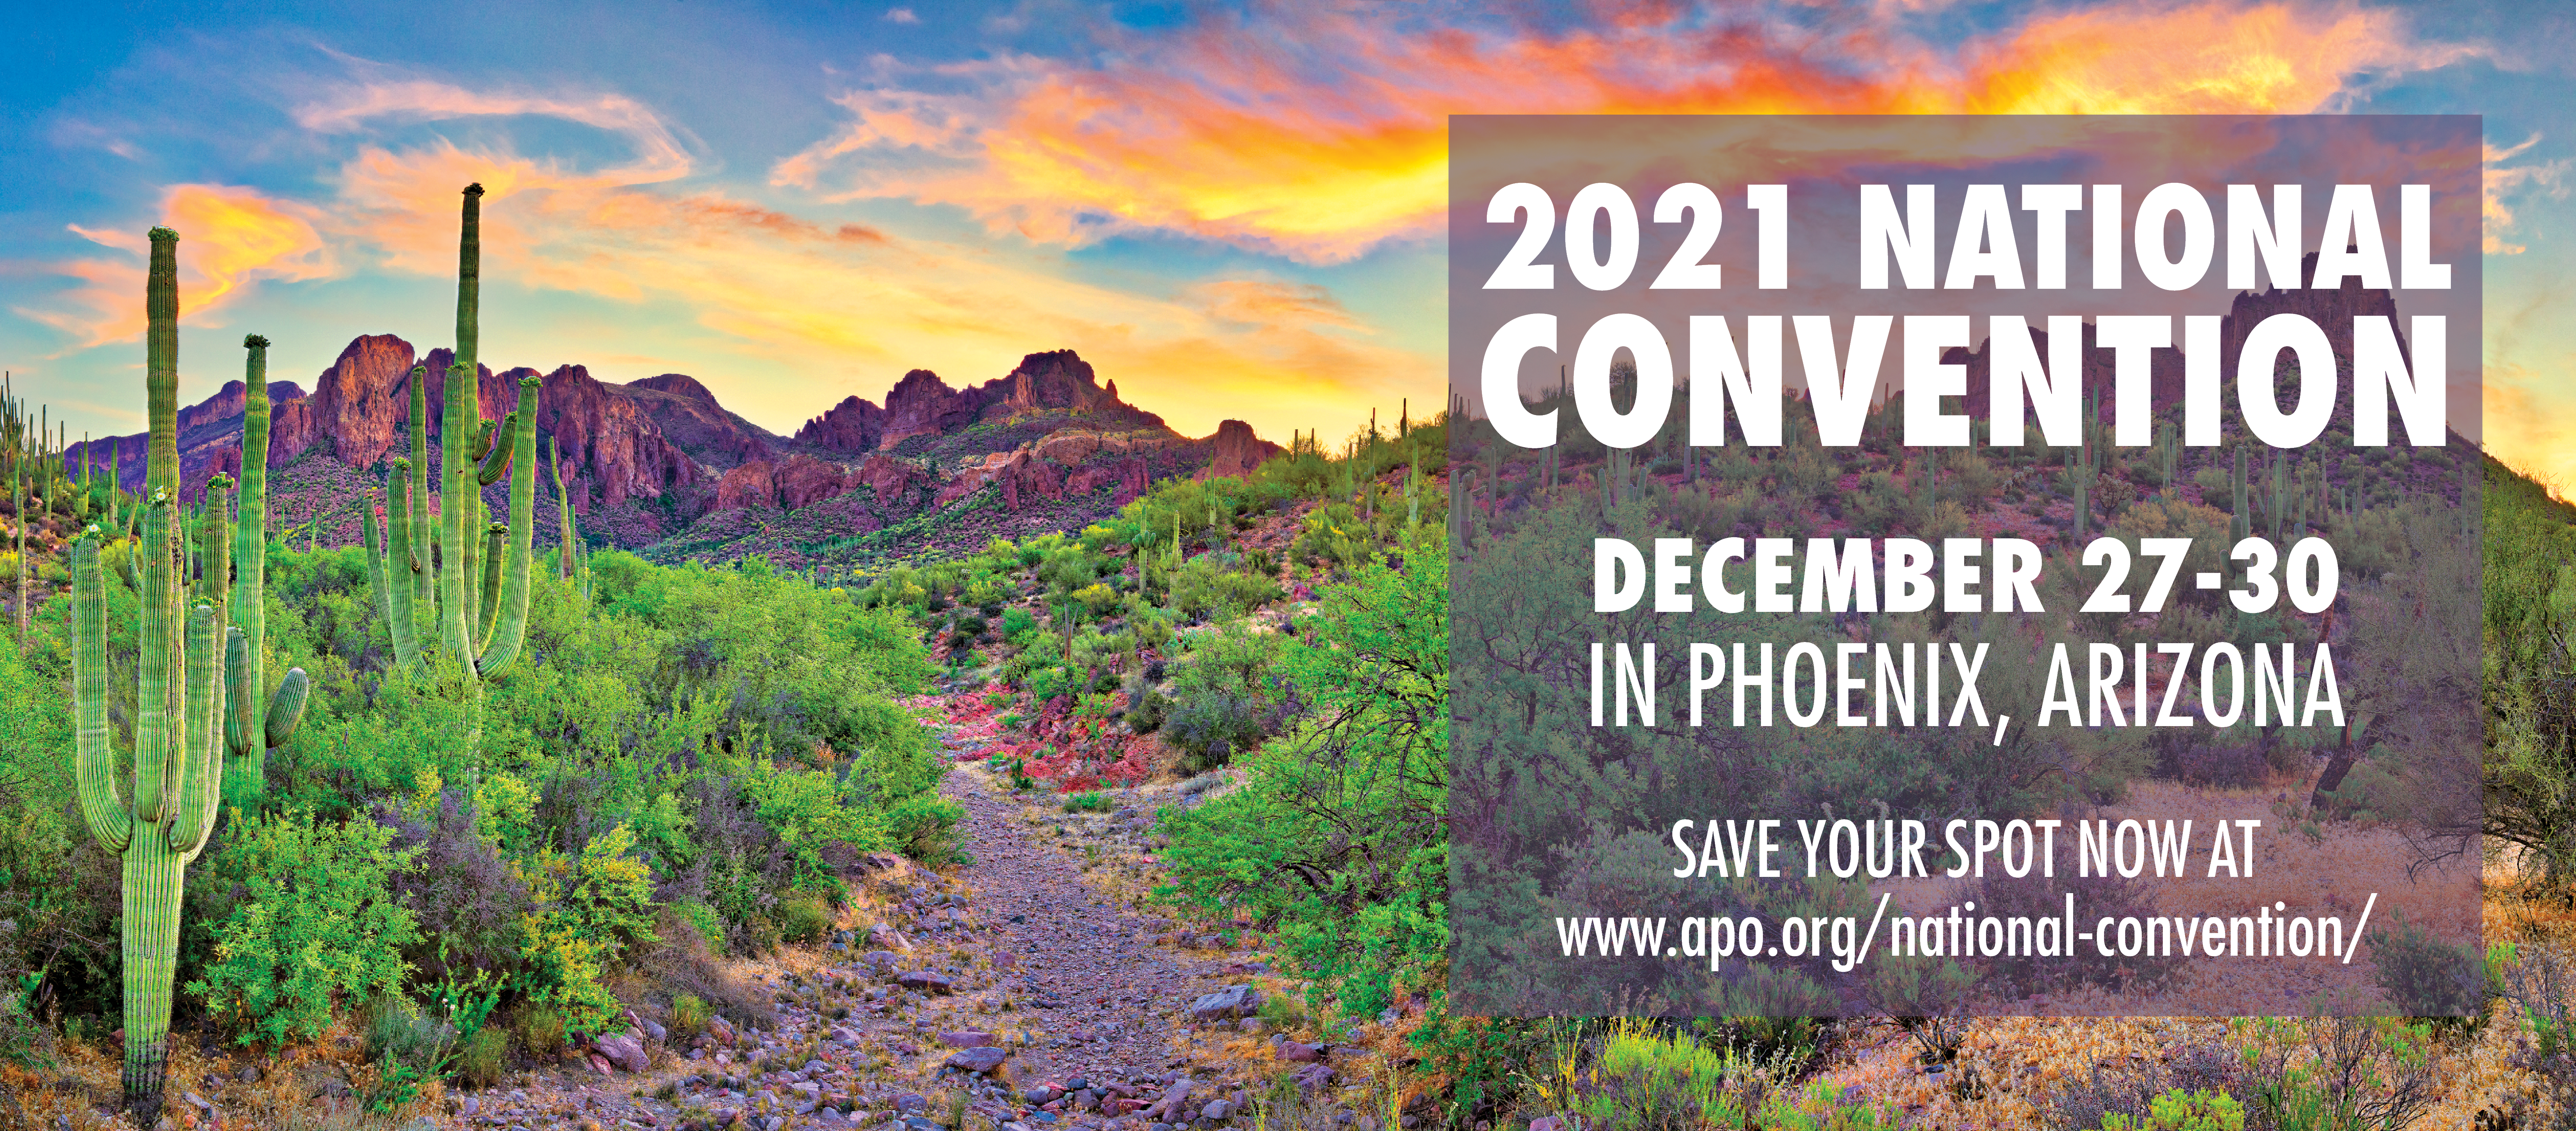 Registration for the 2021 National Convention is open! Click to learn more.